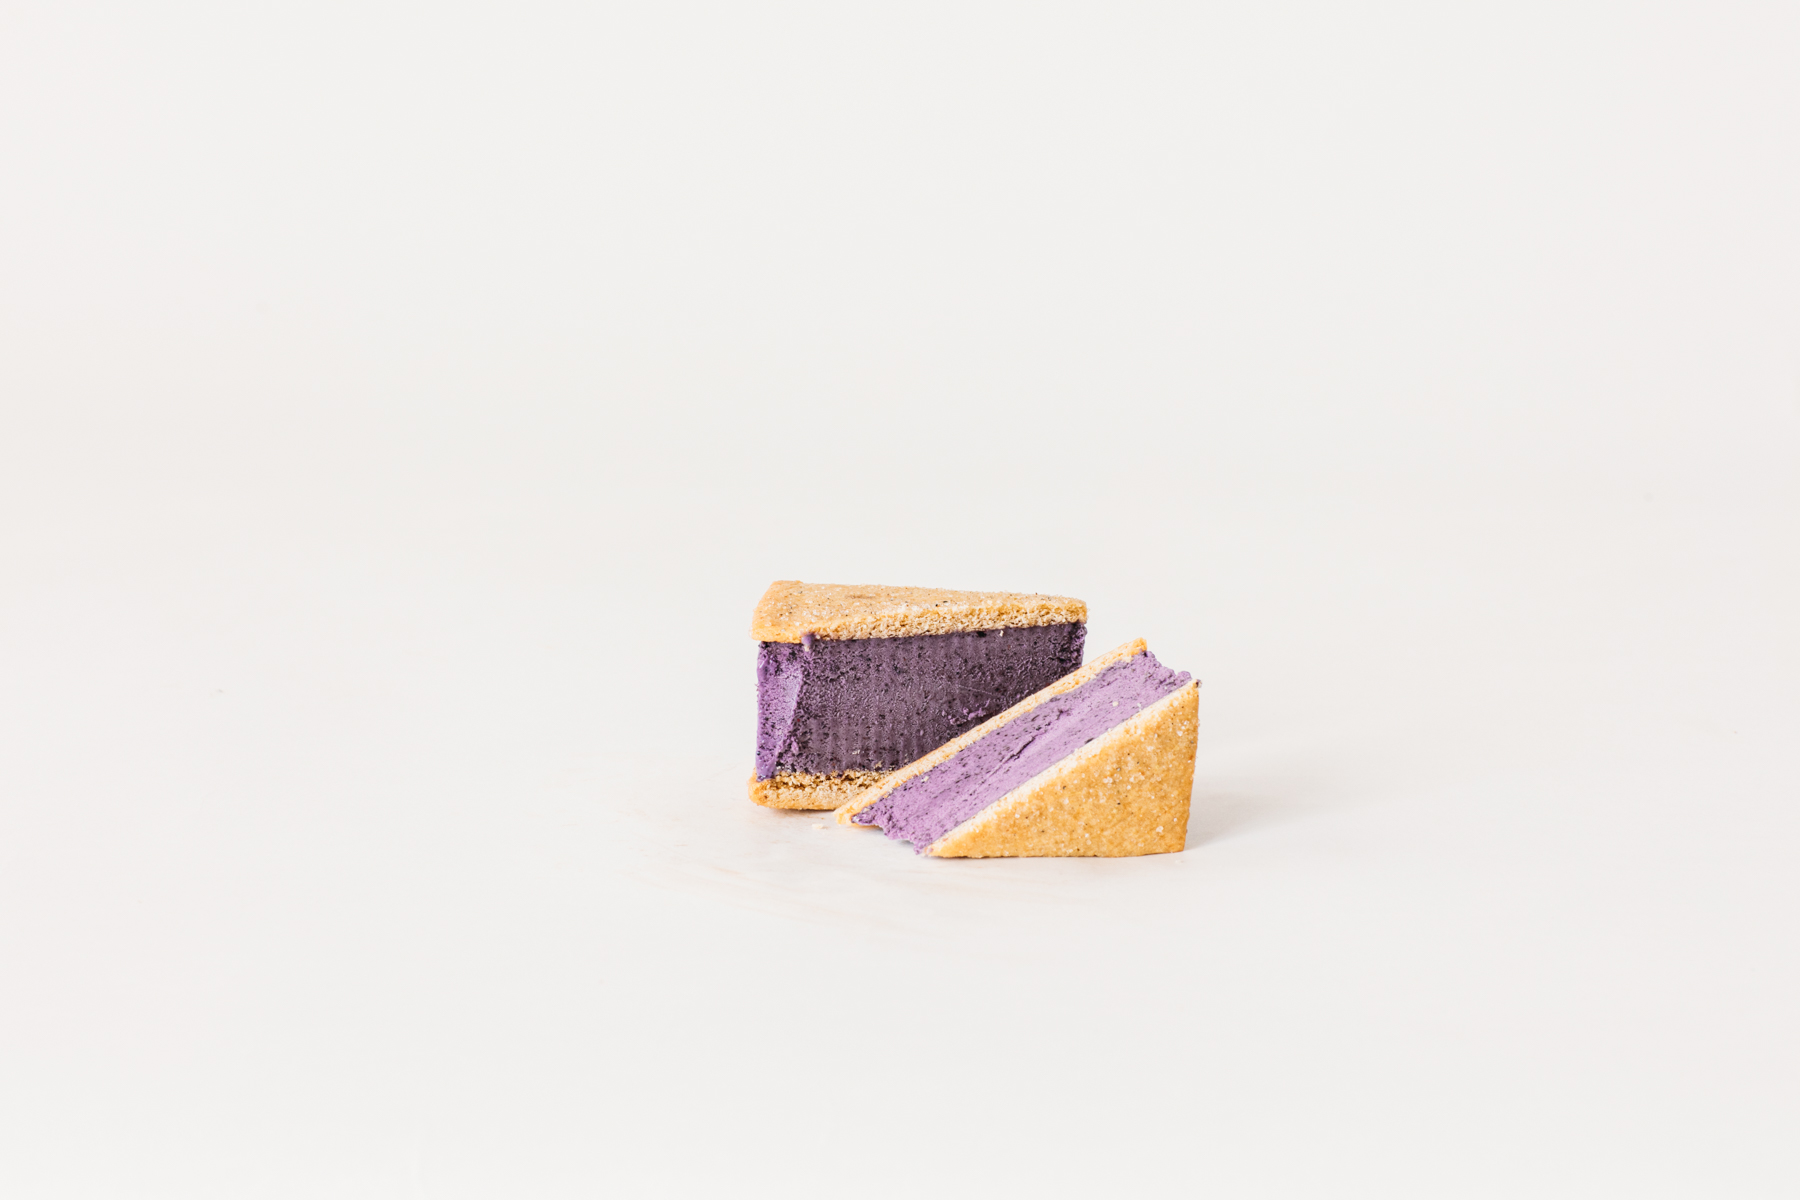 sandwich-blueberry-cut.jpg